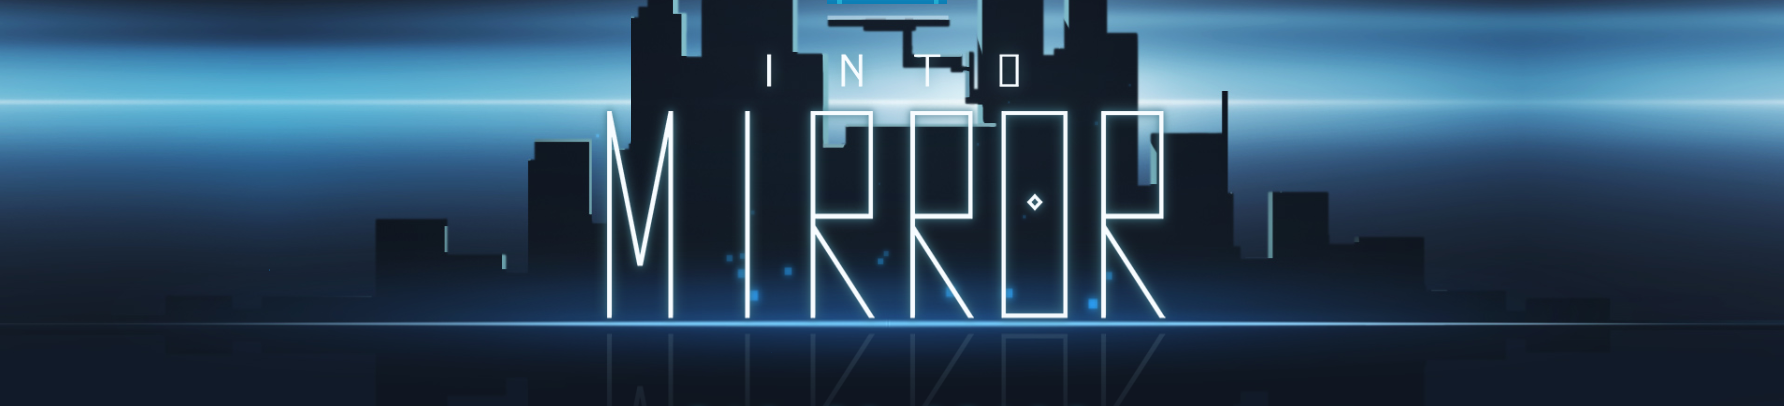 into-mirror-screenshot-logo-home-cyberpunk-italia